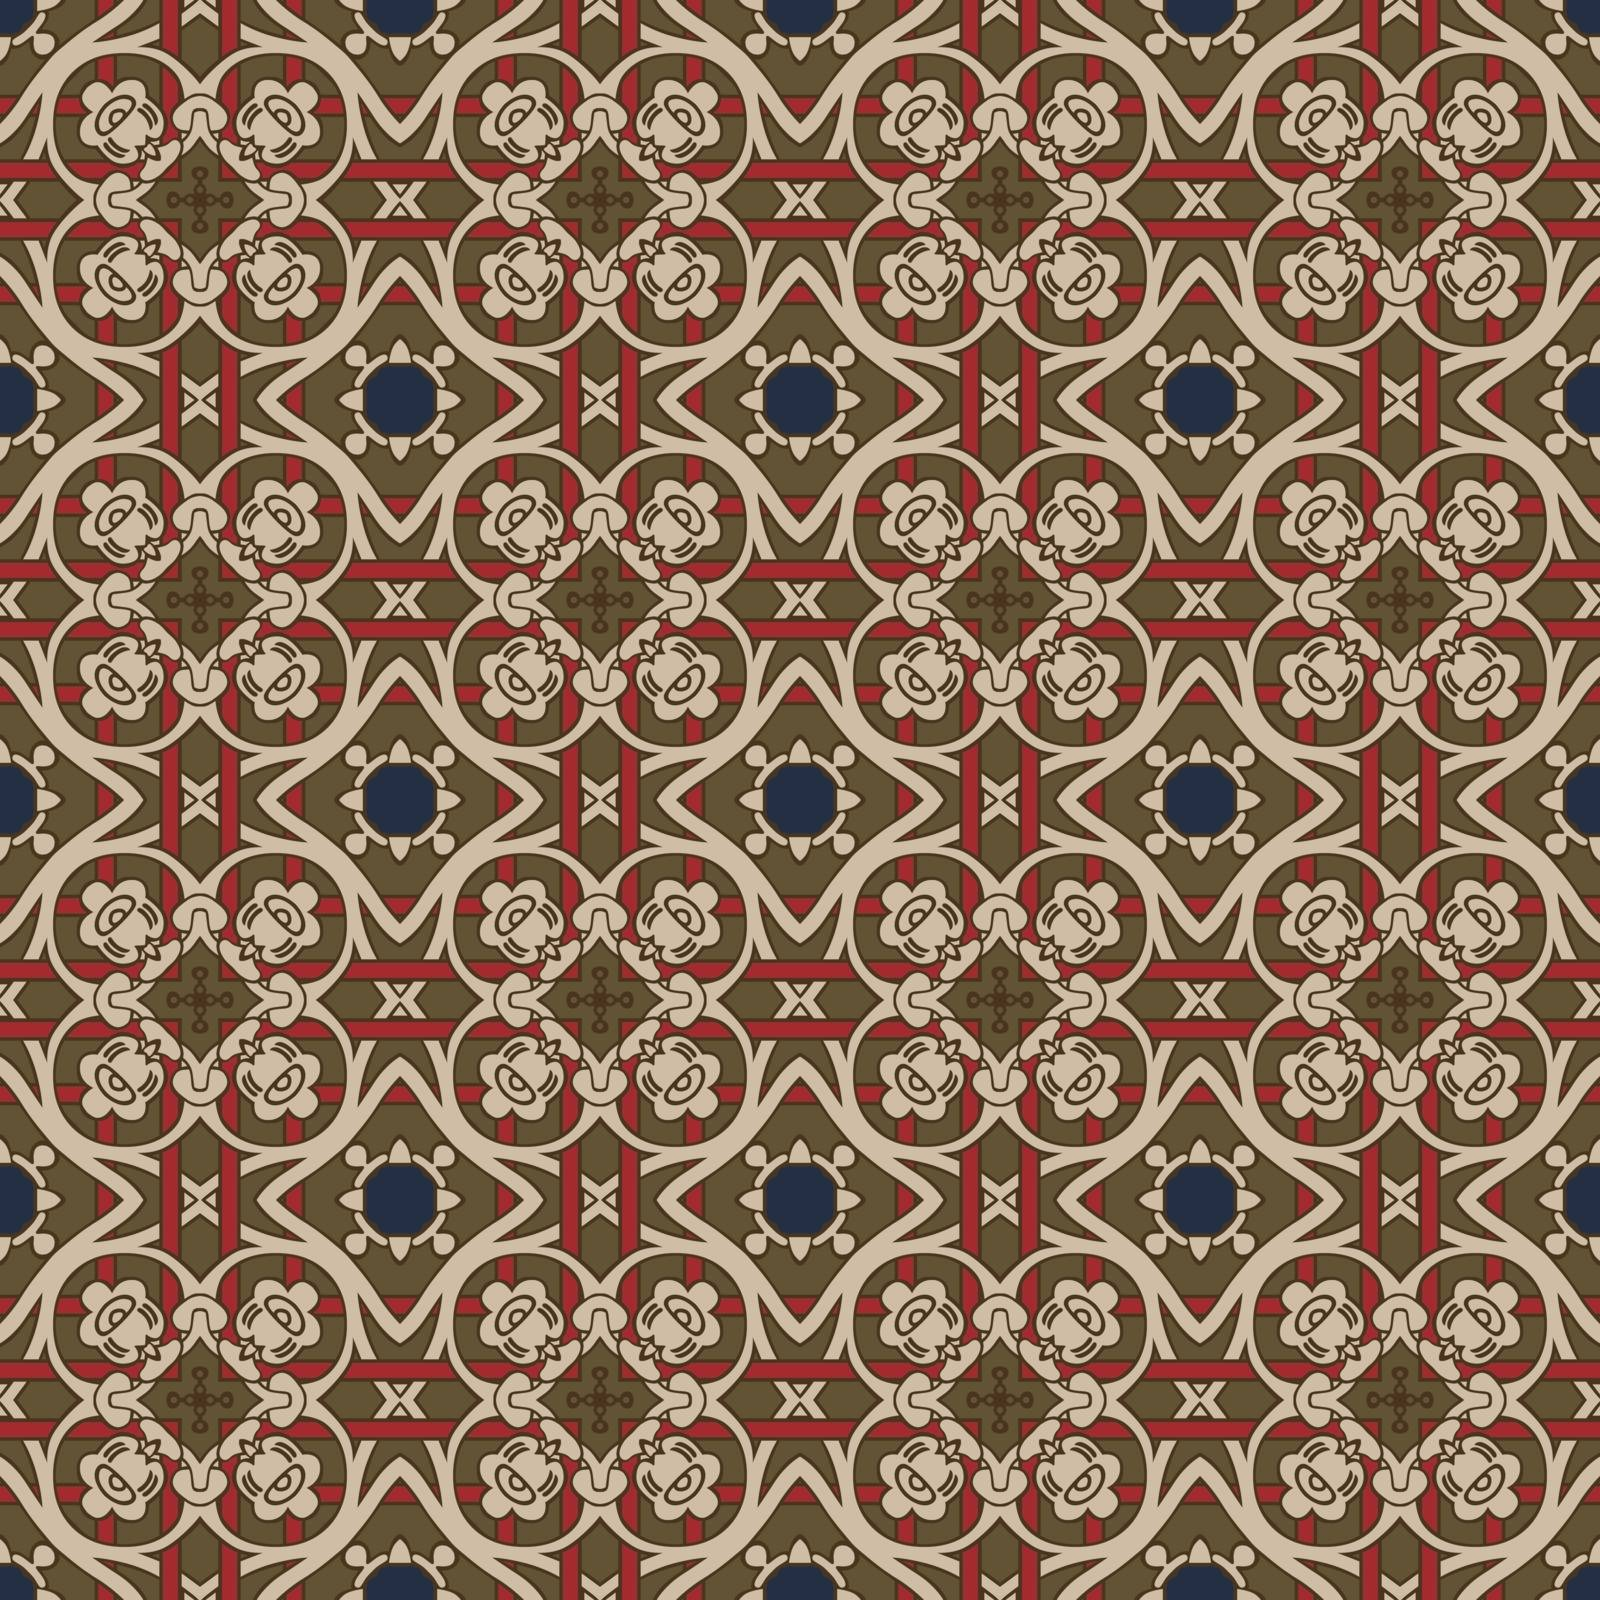 Seamless illustrated pattern made of abstract elements in beige,red, blue and brown